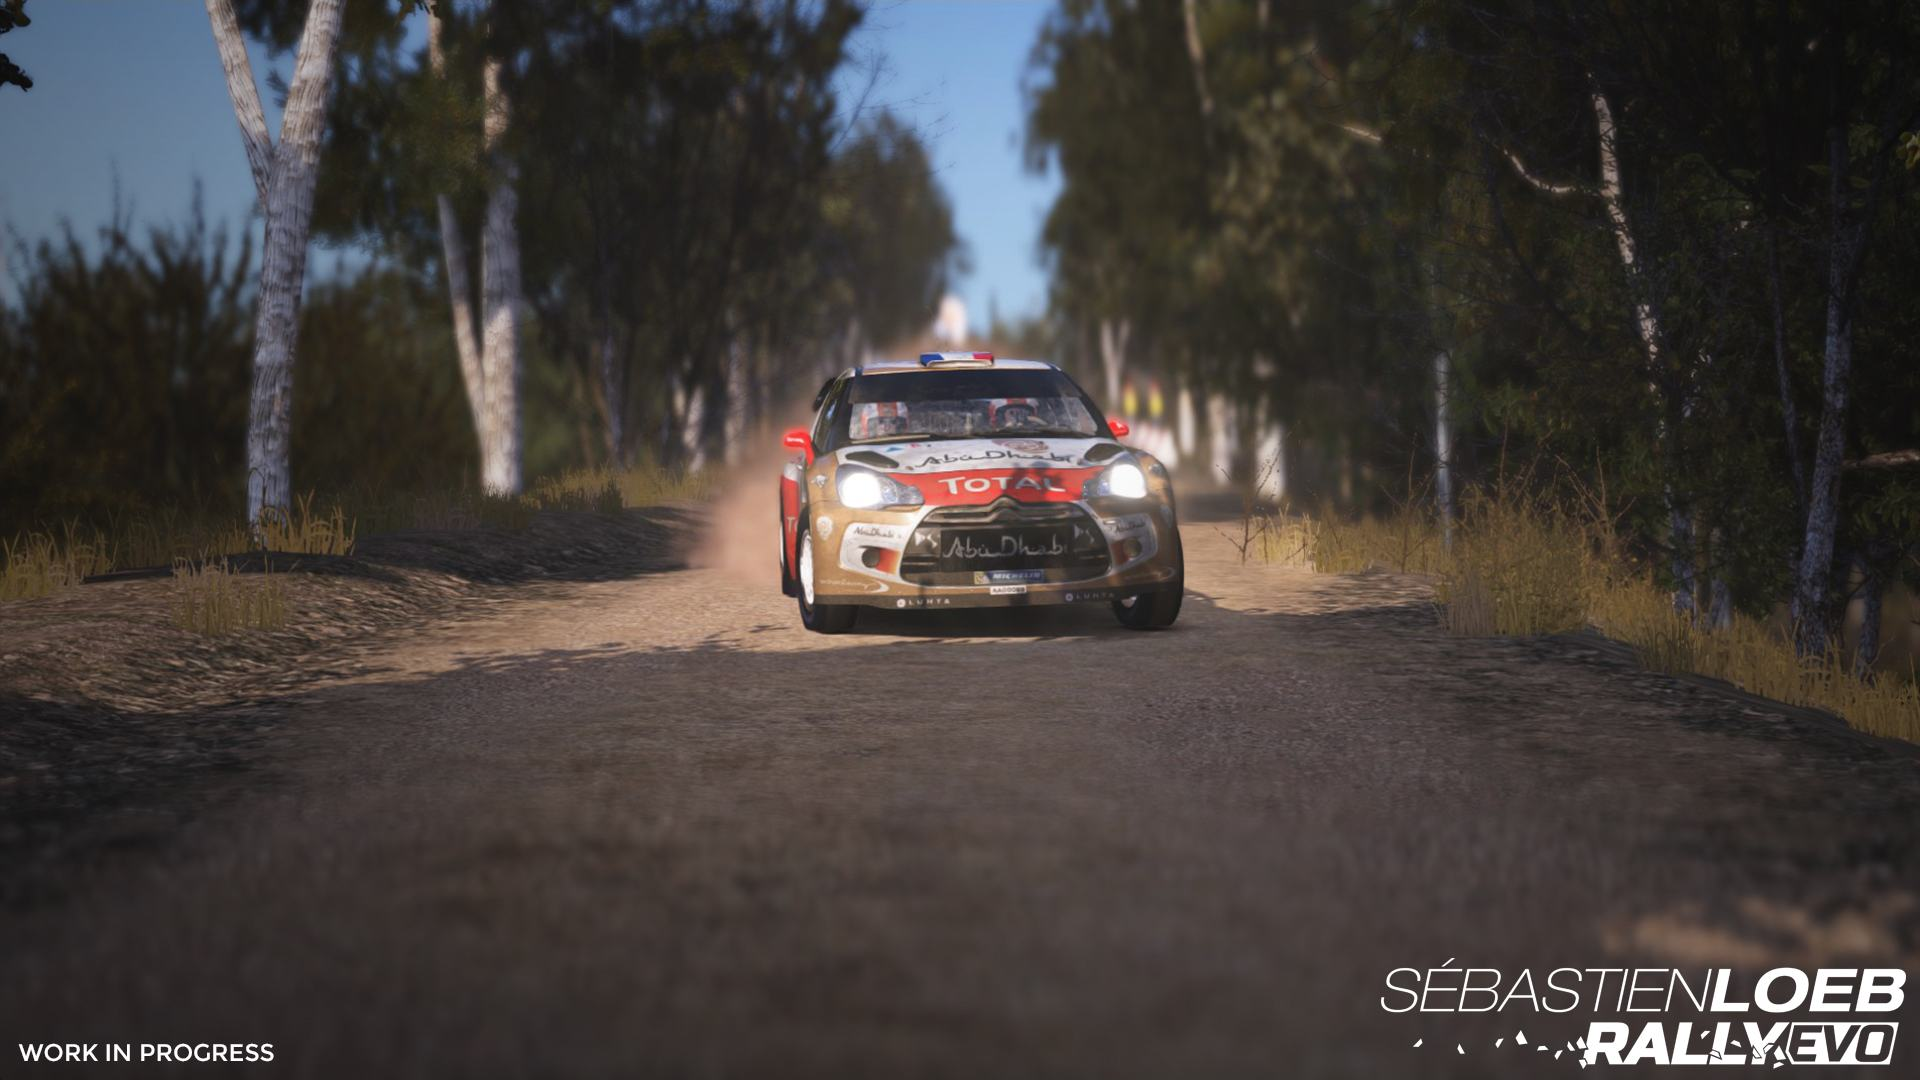 Sebastien Loeb Rally Evo disponible